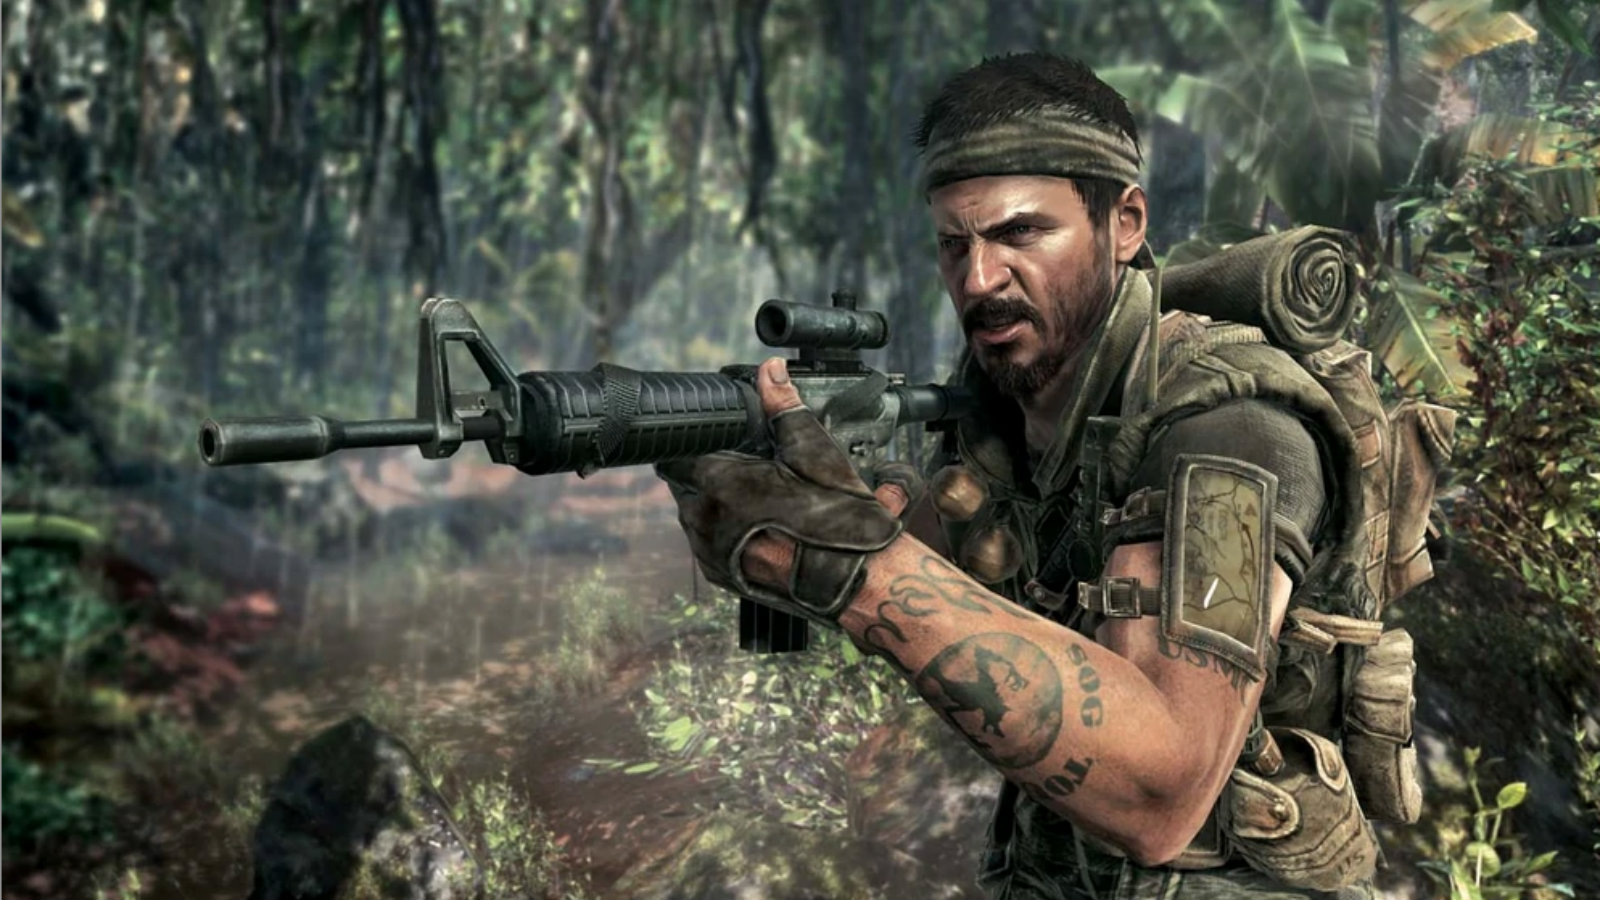 Call of Duty's 2020 release — rumored to be set during Vietnam war — is on schedule despite rumors to the contrary.